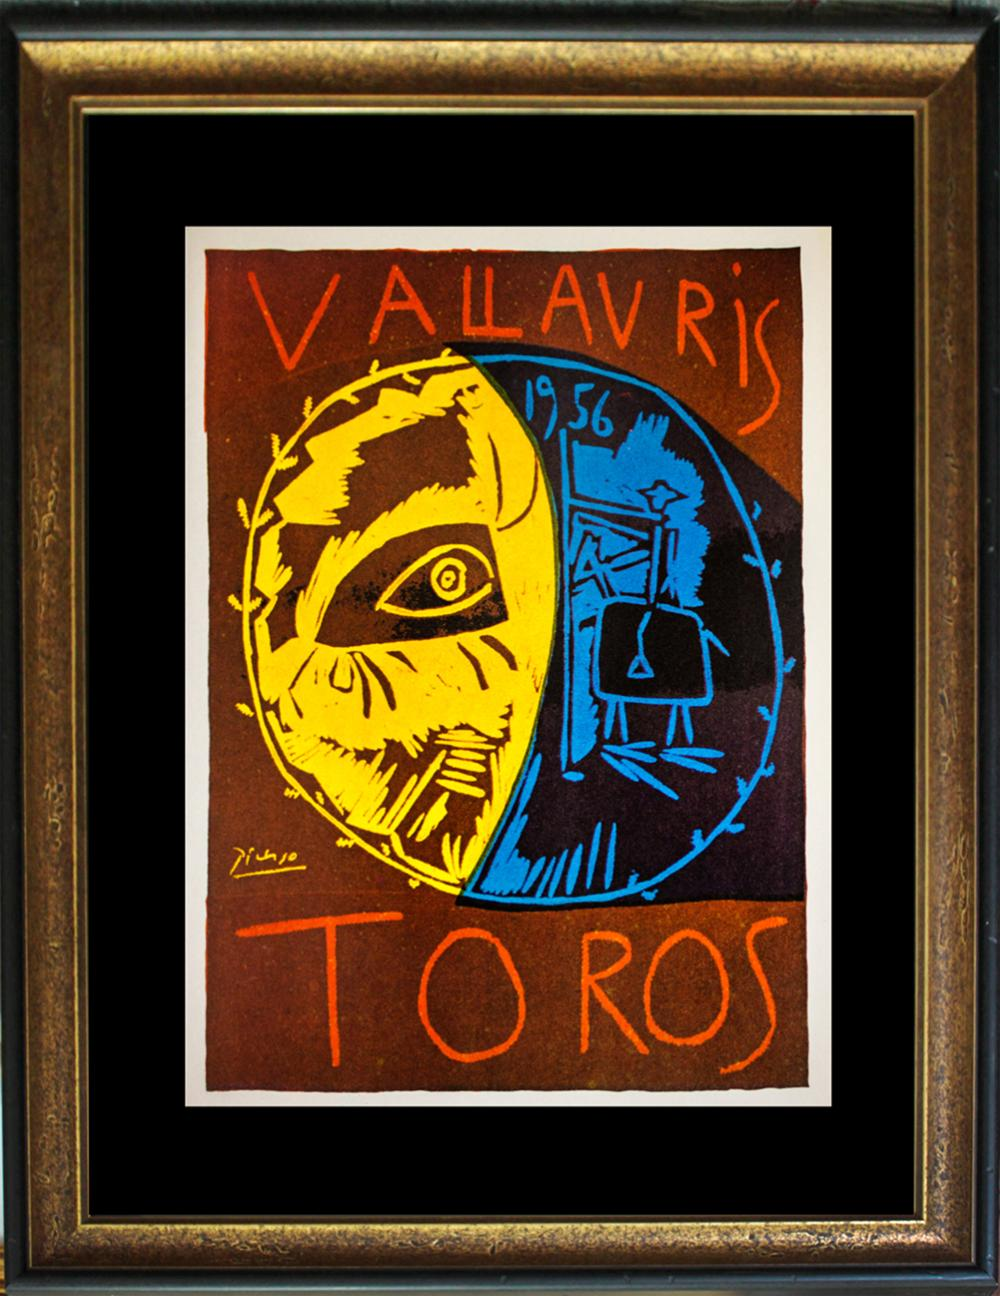 Pablo Picasso color Lithograph printed in 1964 and published by Joseph Foster